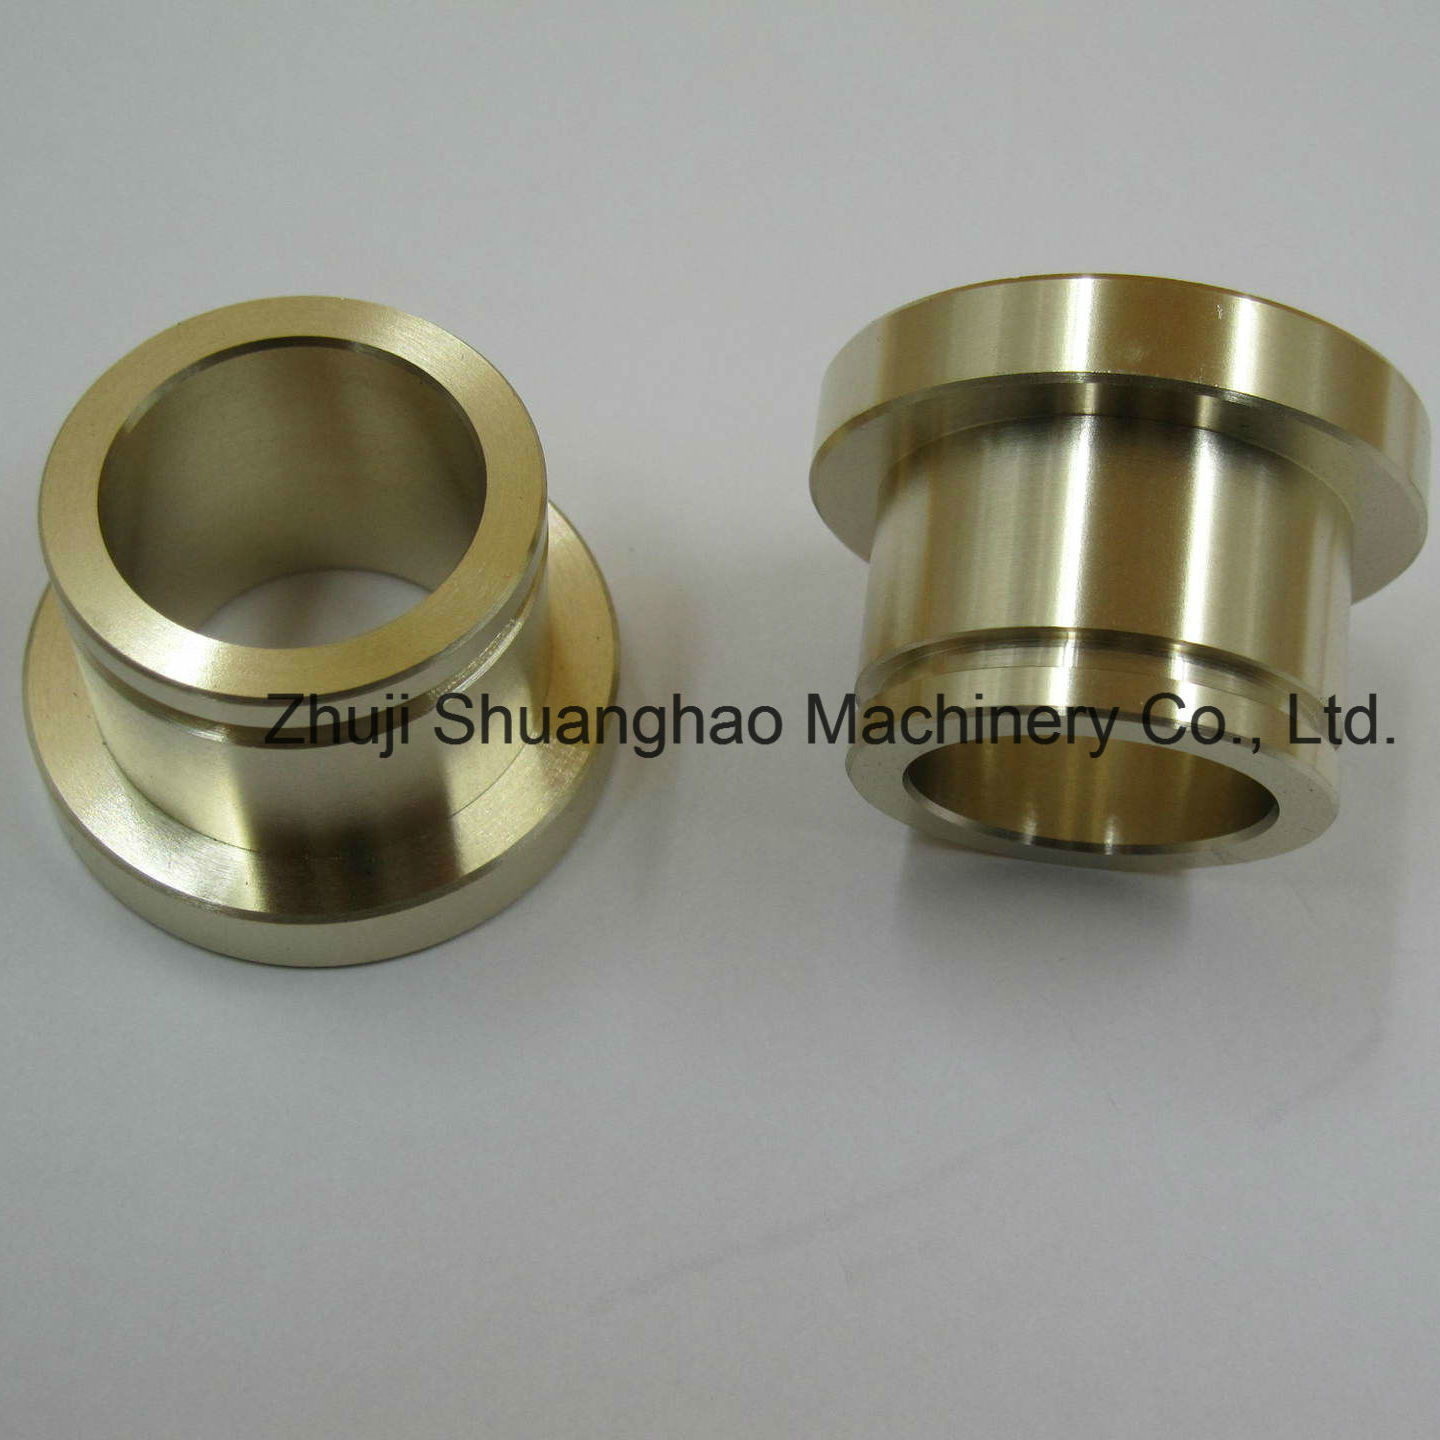 Brass Flange Flanged Machinery Parts